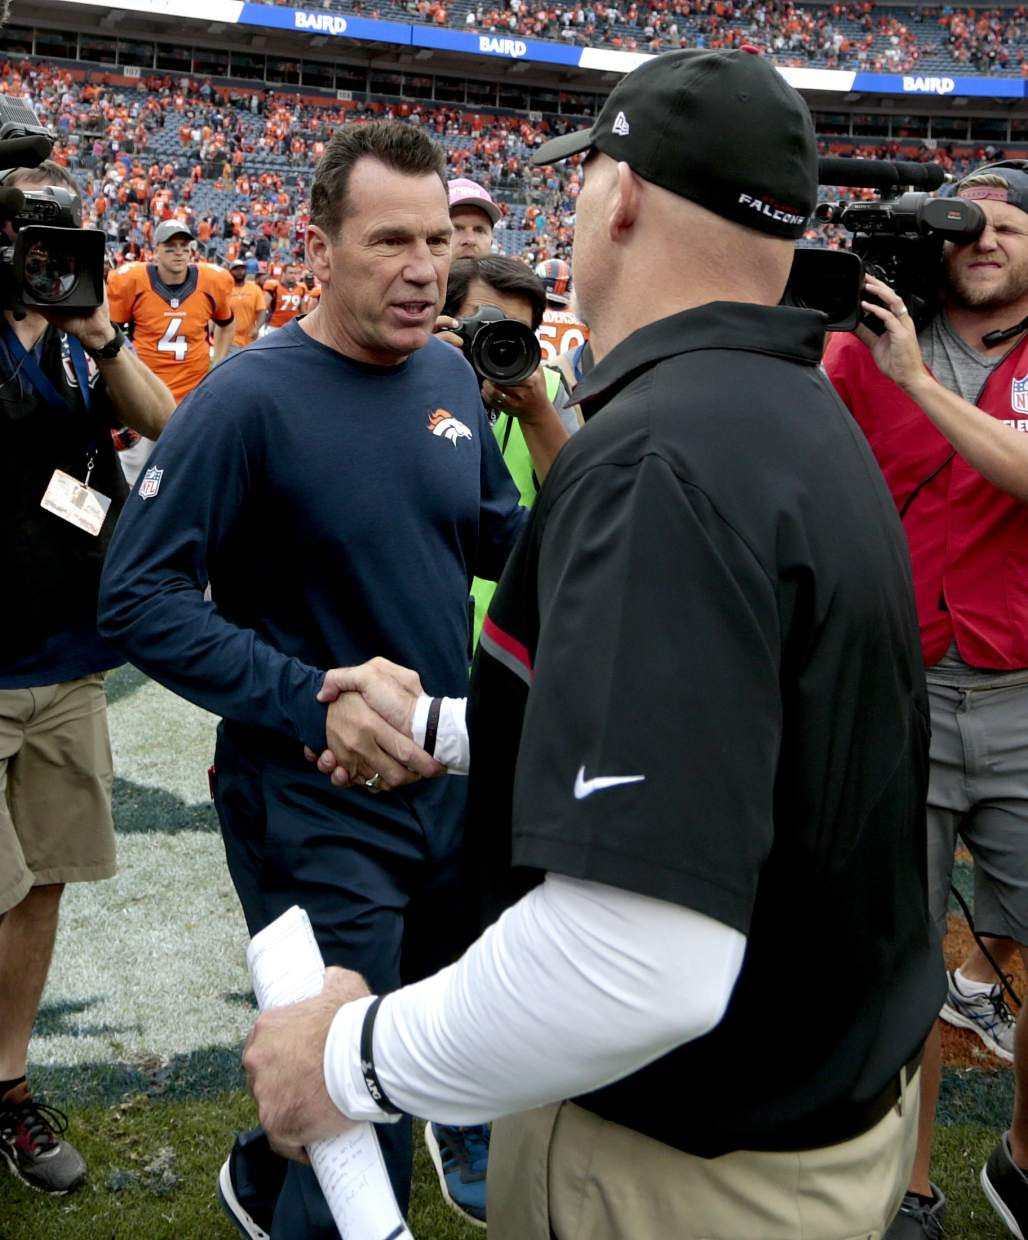 Denver Broncos head coach Gary Kubiak, left, greets Atlanta Falcons head coach Dan Quinn after an NFL football game, Sunday, Oct. 9, 2016, in Denver. The Falcons won 23-16. (AP Photo/Joe Mahoney)